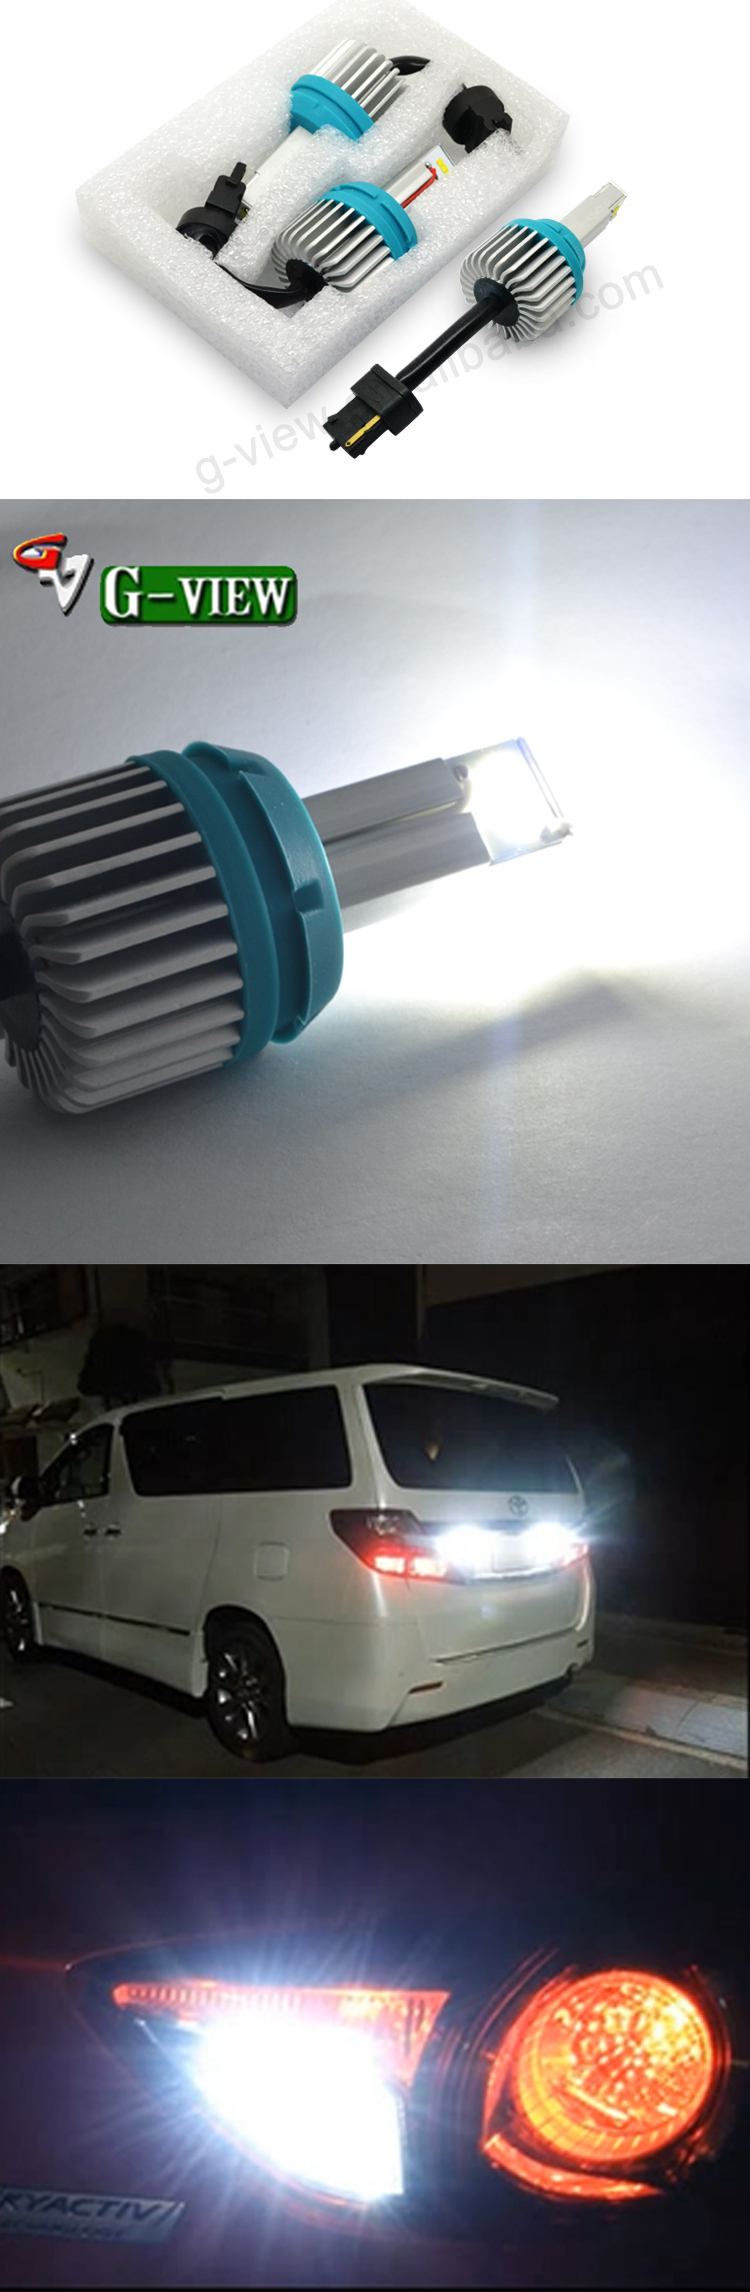 China Factory T15 w16w 921 led car lamp csp 1200lm led backup light auto led lighting for reverse light